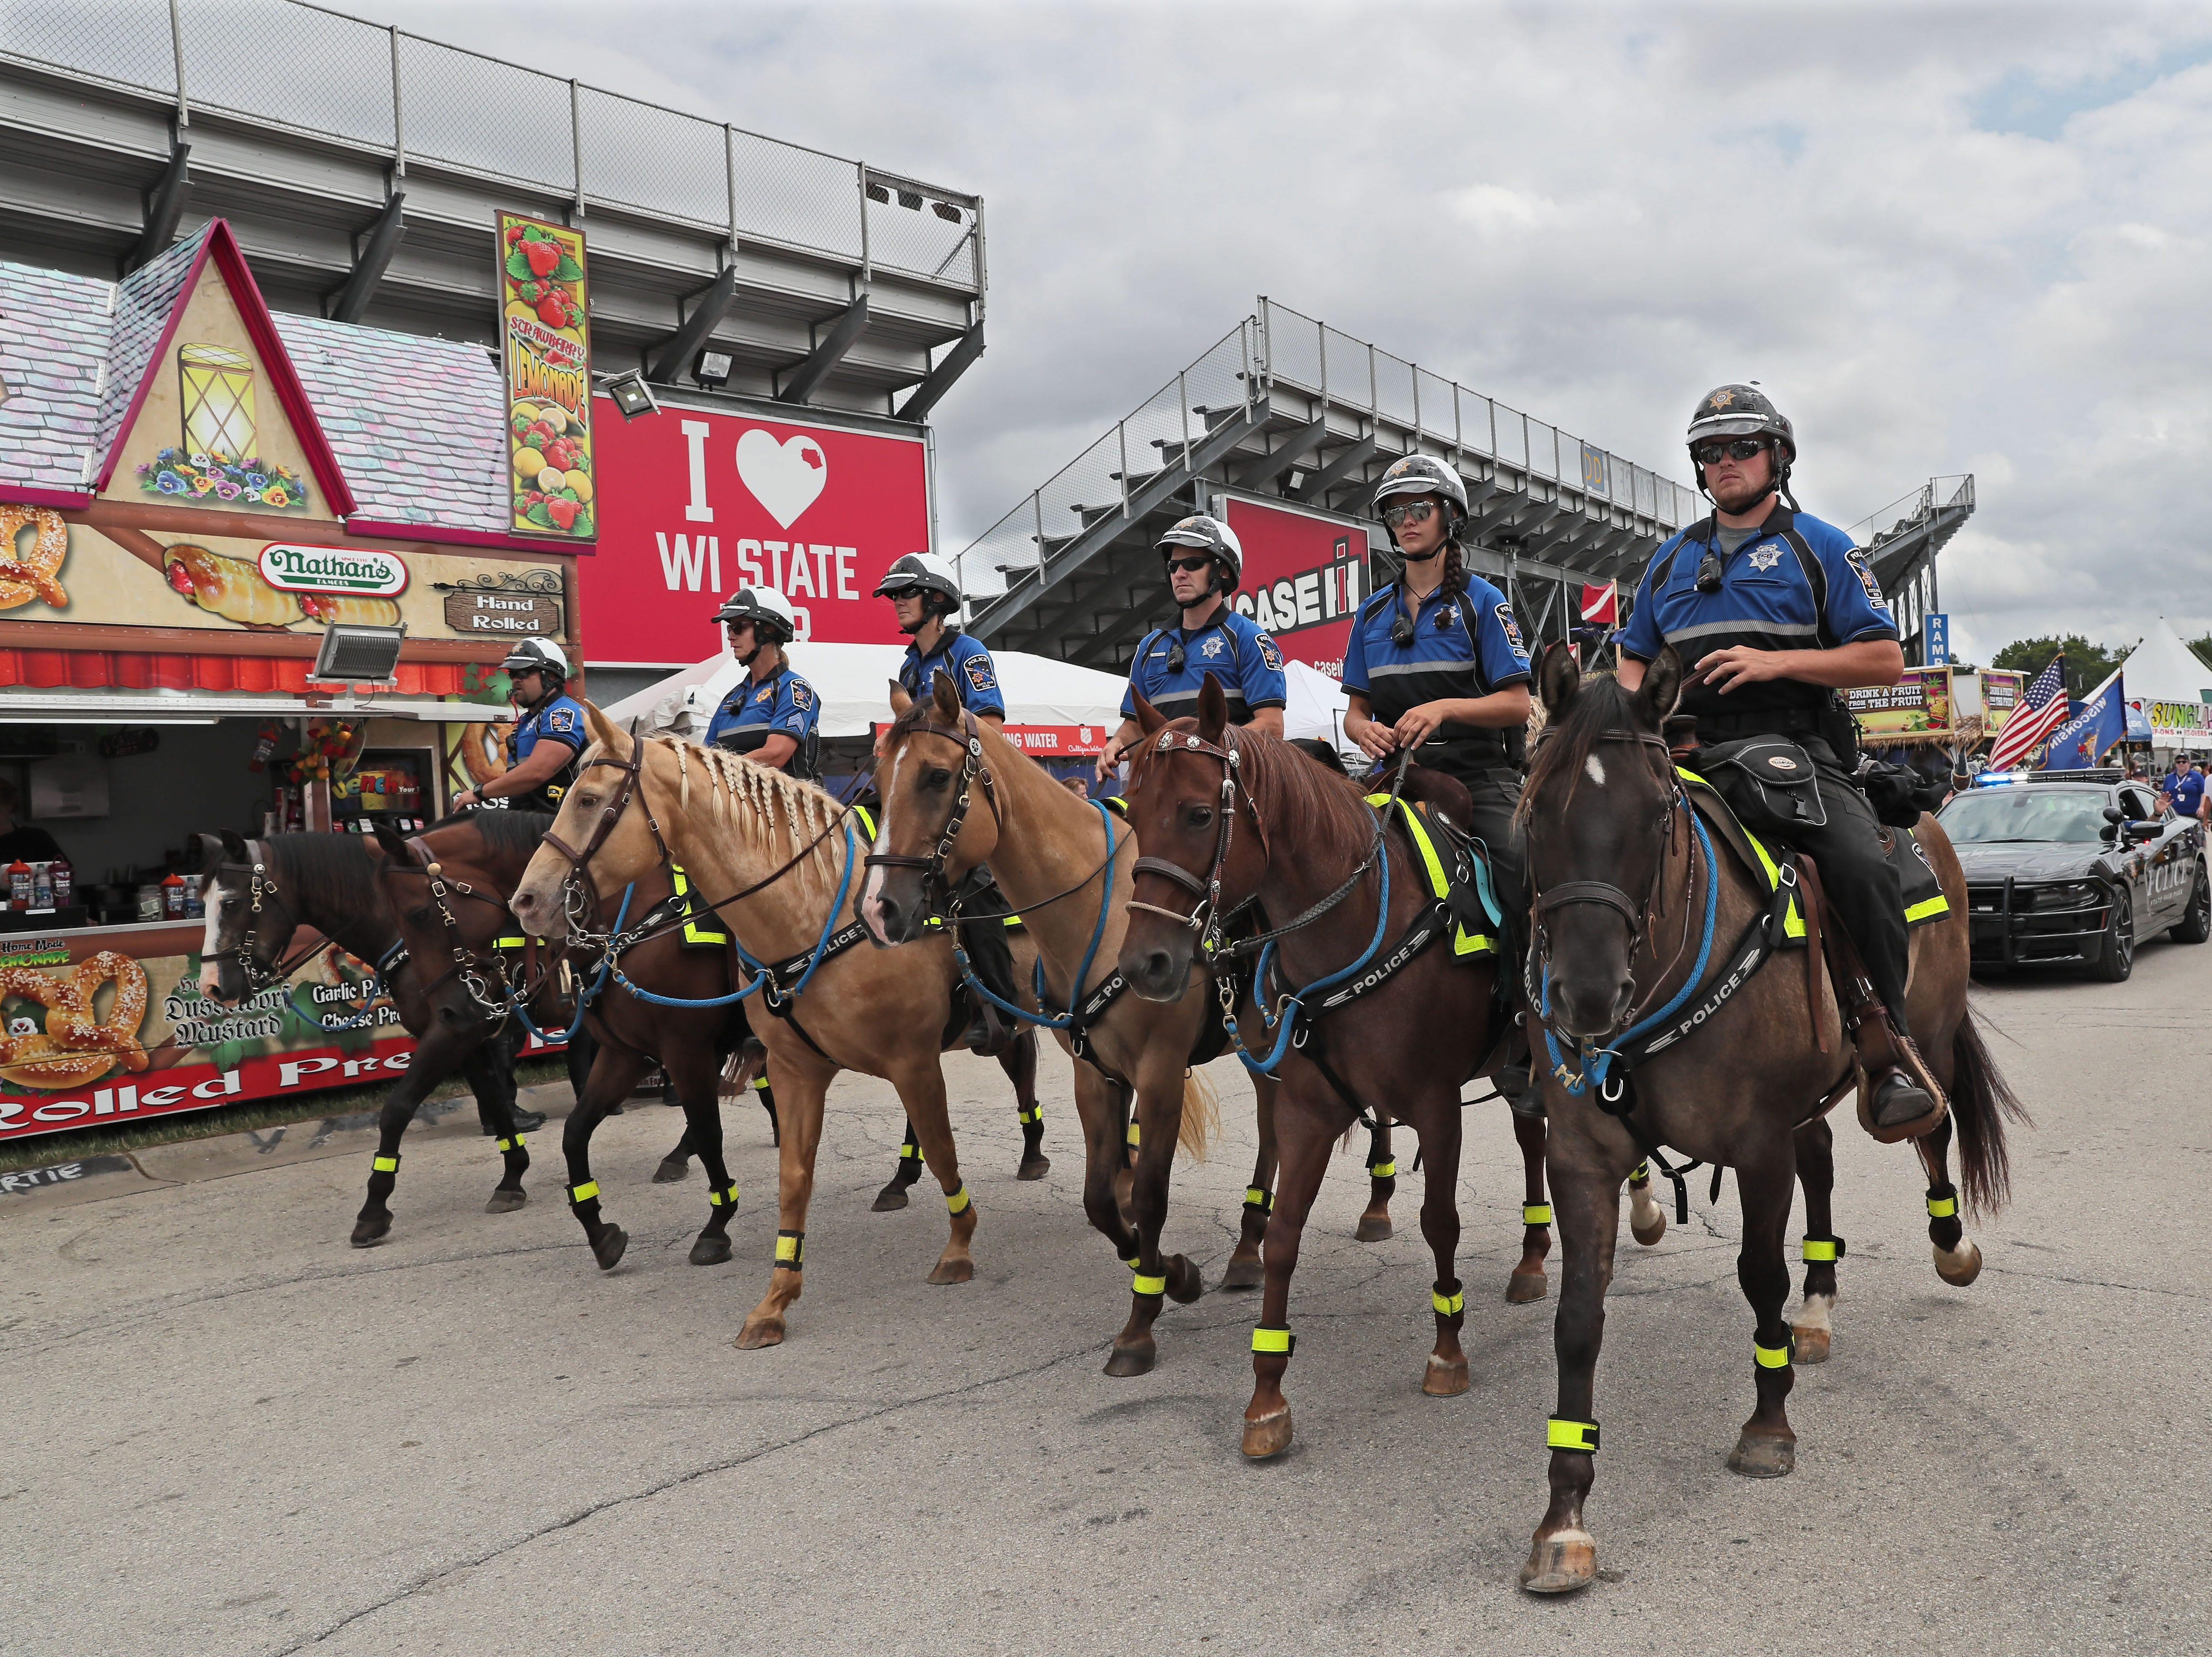 Wisconsin State Fair's mounted police patrol is celebrating its 50th anniversary. In addition to patrolling, the officers lead the fair's daily parade. From left, Nathan Anhalt and horse Lil Joe, Sgt. Deb Caravello and Saul,  Penny Lepak and Rosie, Kyle Wallschlaeger and Bugsy, Amanda Lepak and Roxy,Tristan Buddenhagen and Casey.